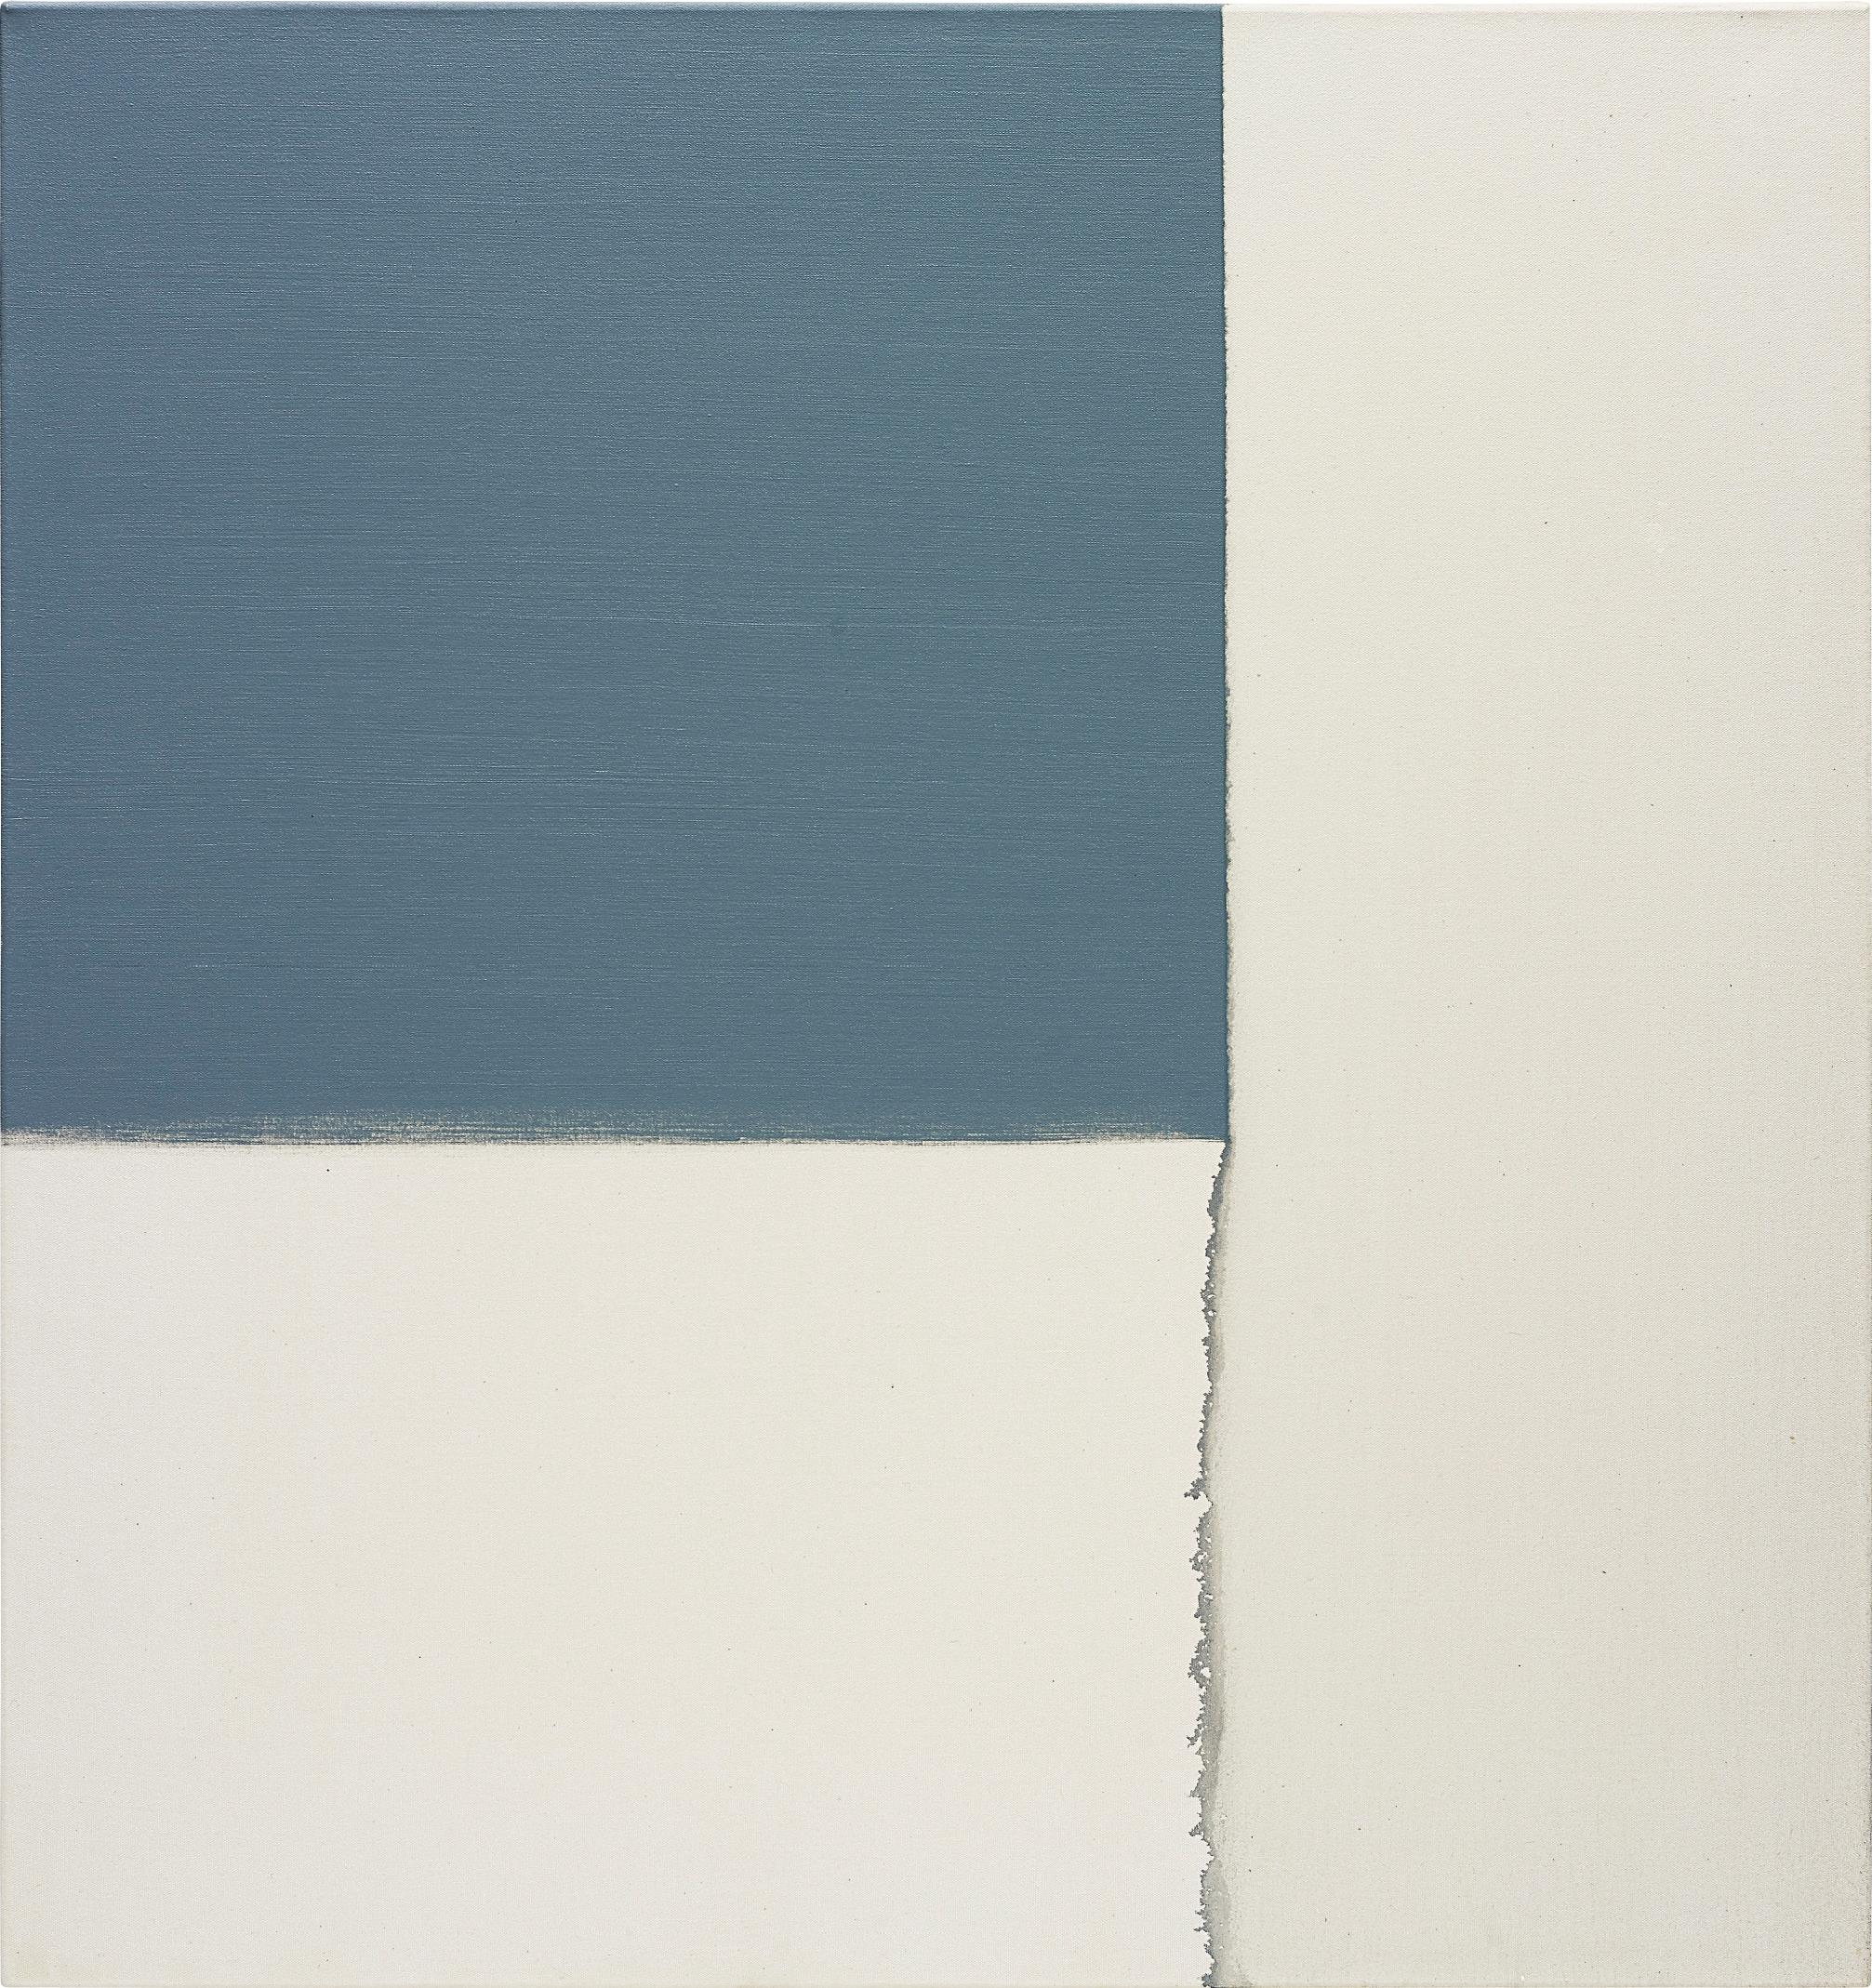 Callum Innes-Exposed Painting, Grey-1996